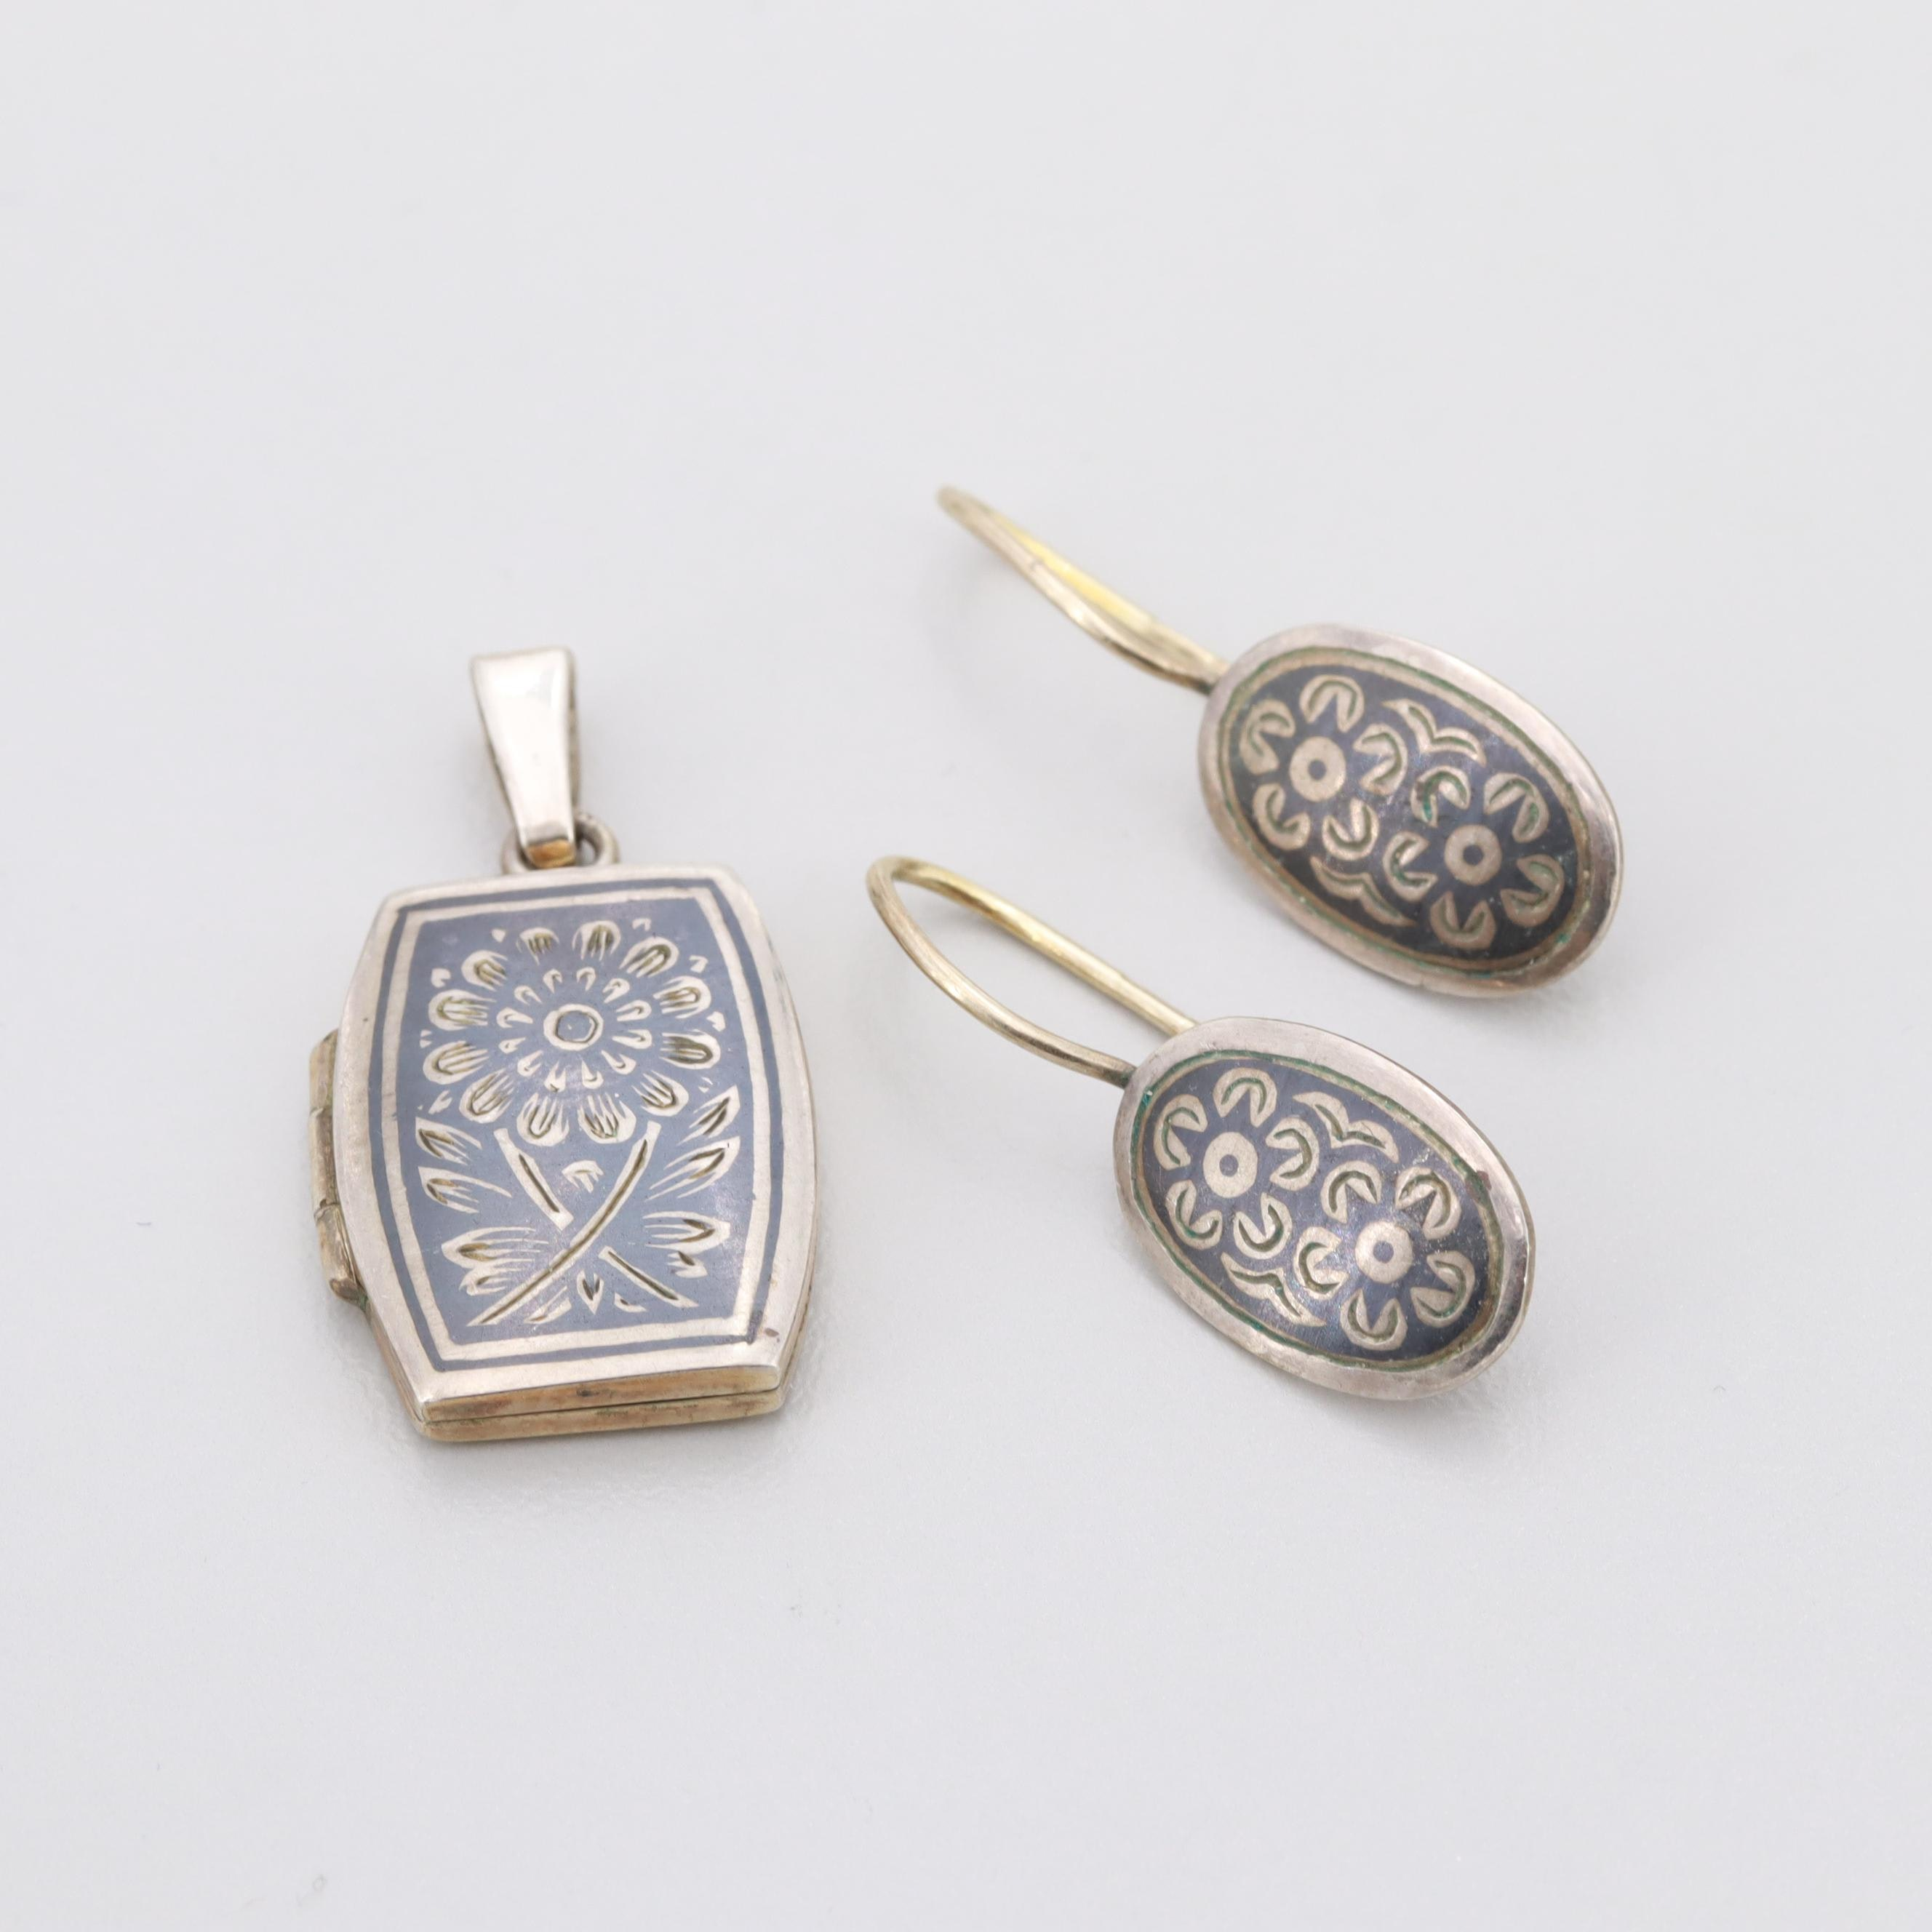 Vintage Russian 875 Silver Niello Locket Pendant and Earrings